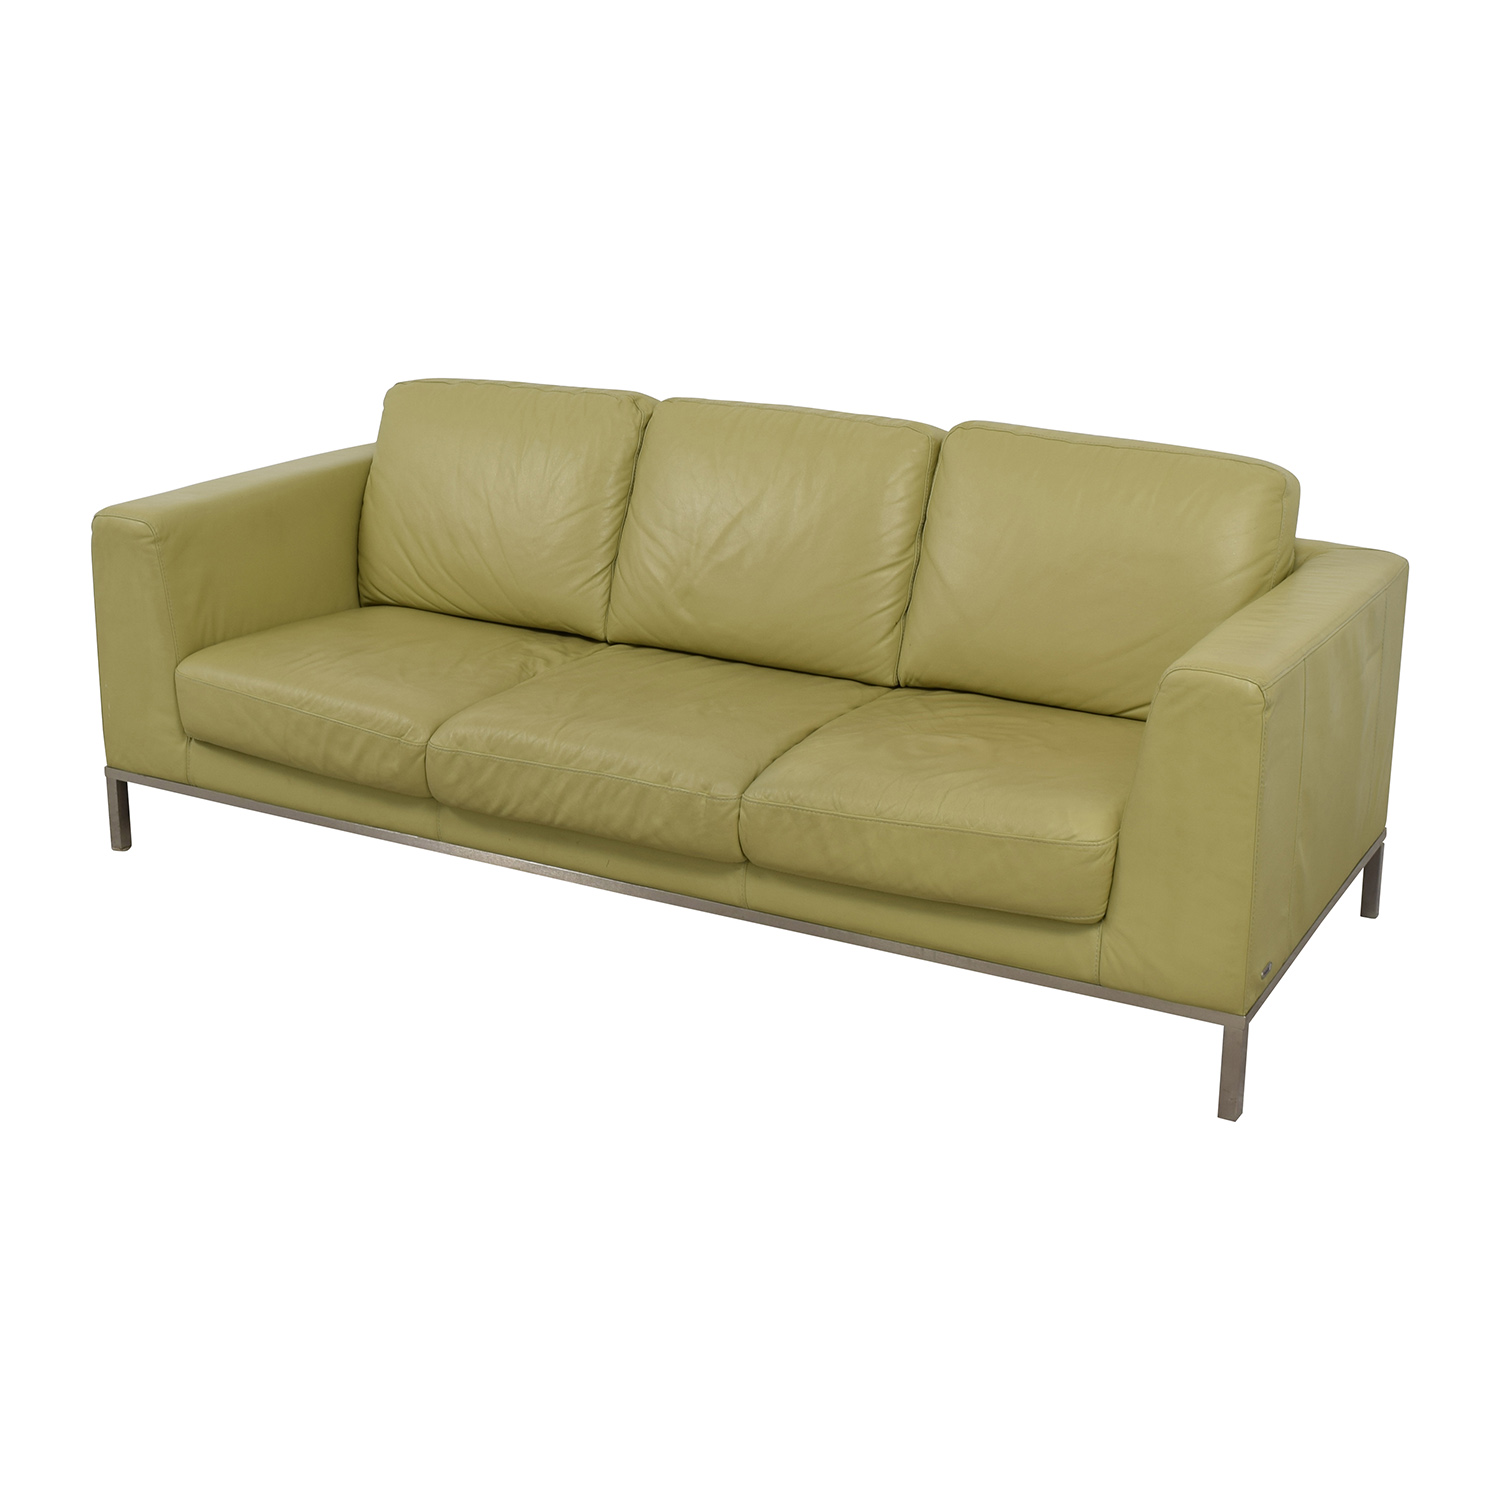 Italsofa Leather Sofa Bed Oropendolaperuorg